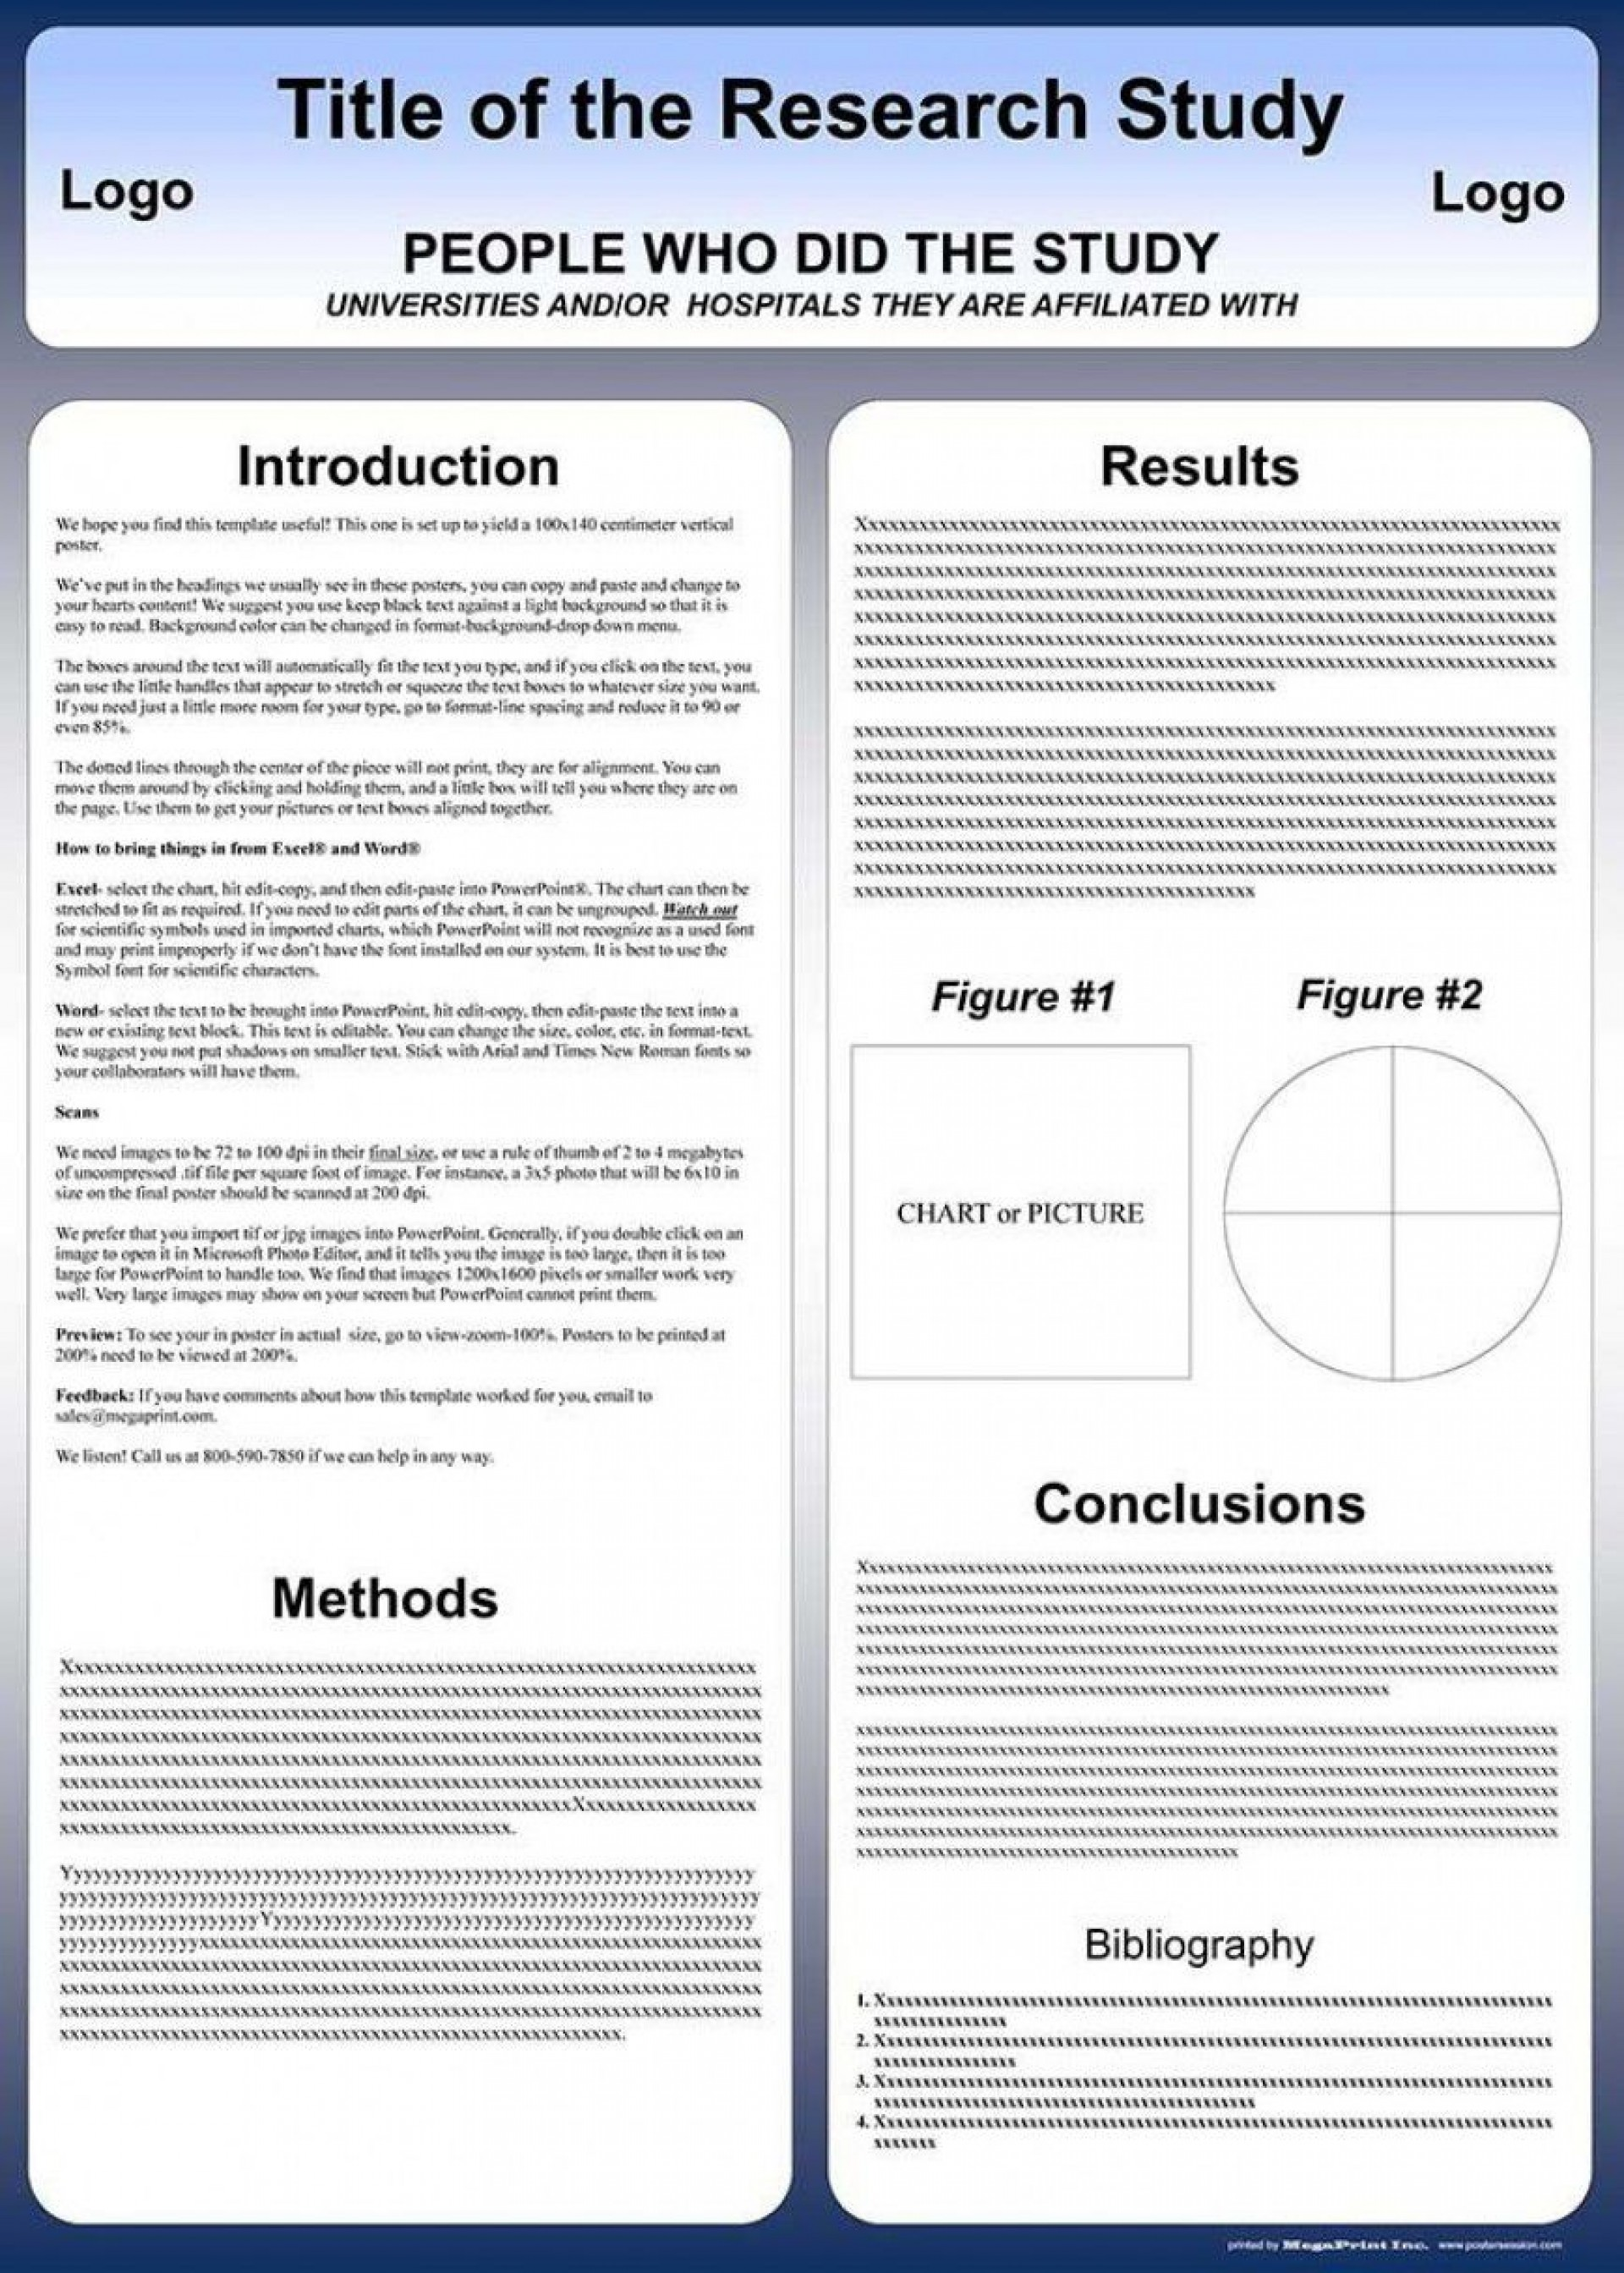 003 Amazing Scientific Poster Template A1 Free Download Photo 1920